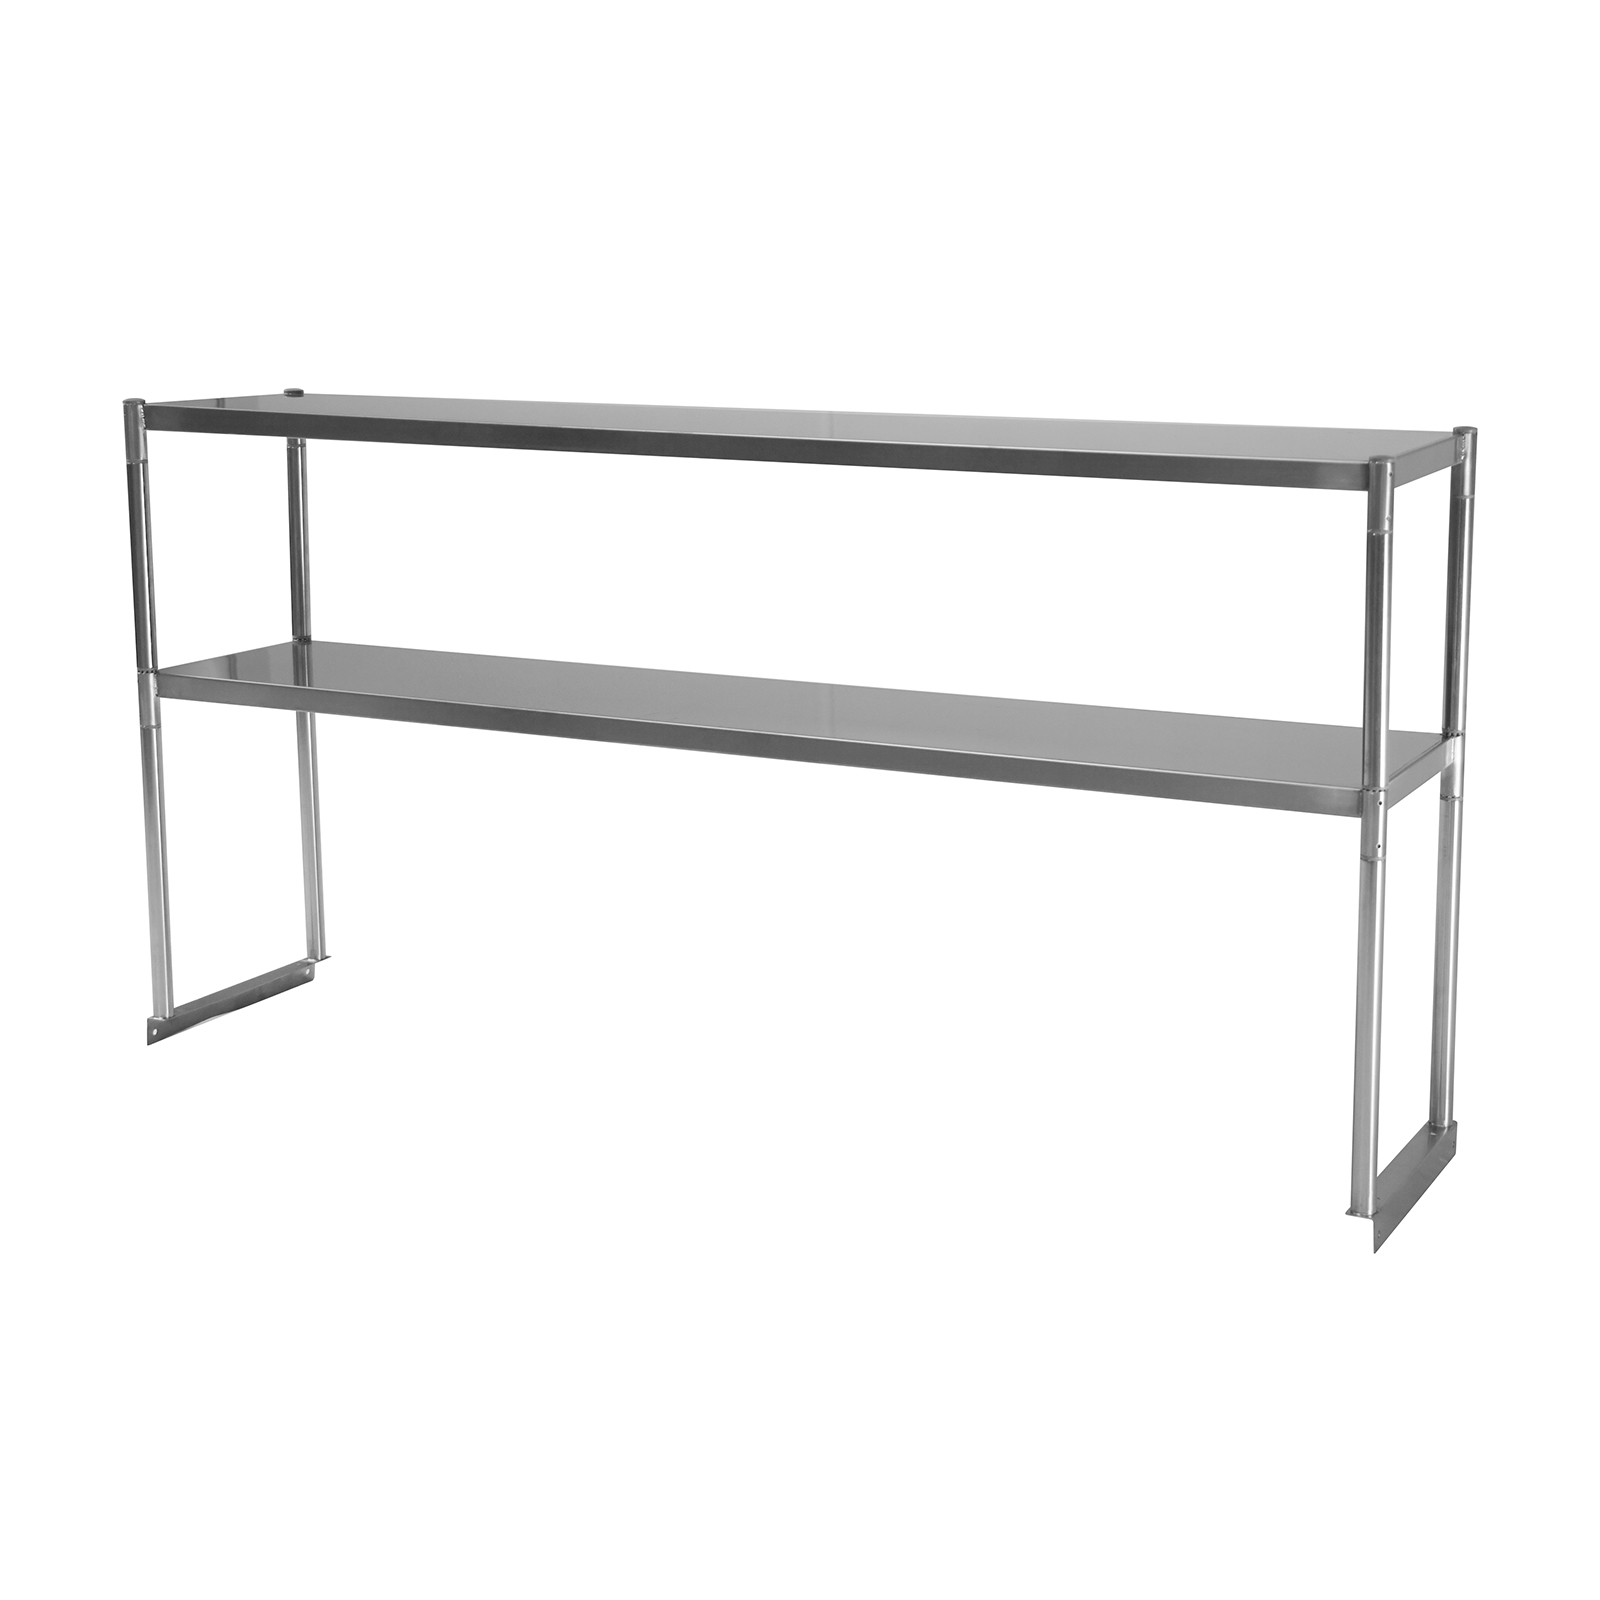 Turbo Air TSOS-5R overshelf, table-mounted